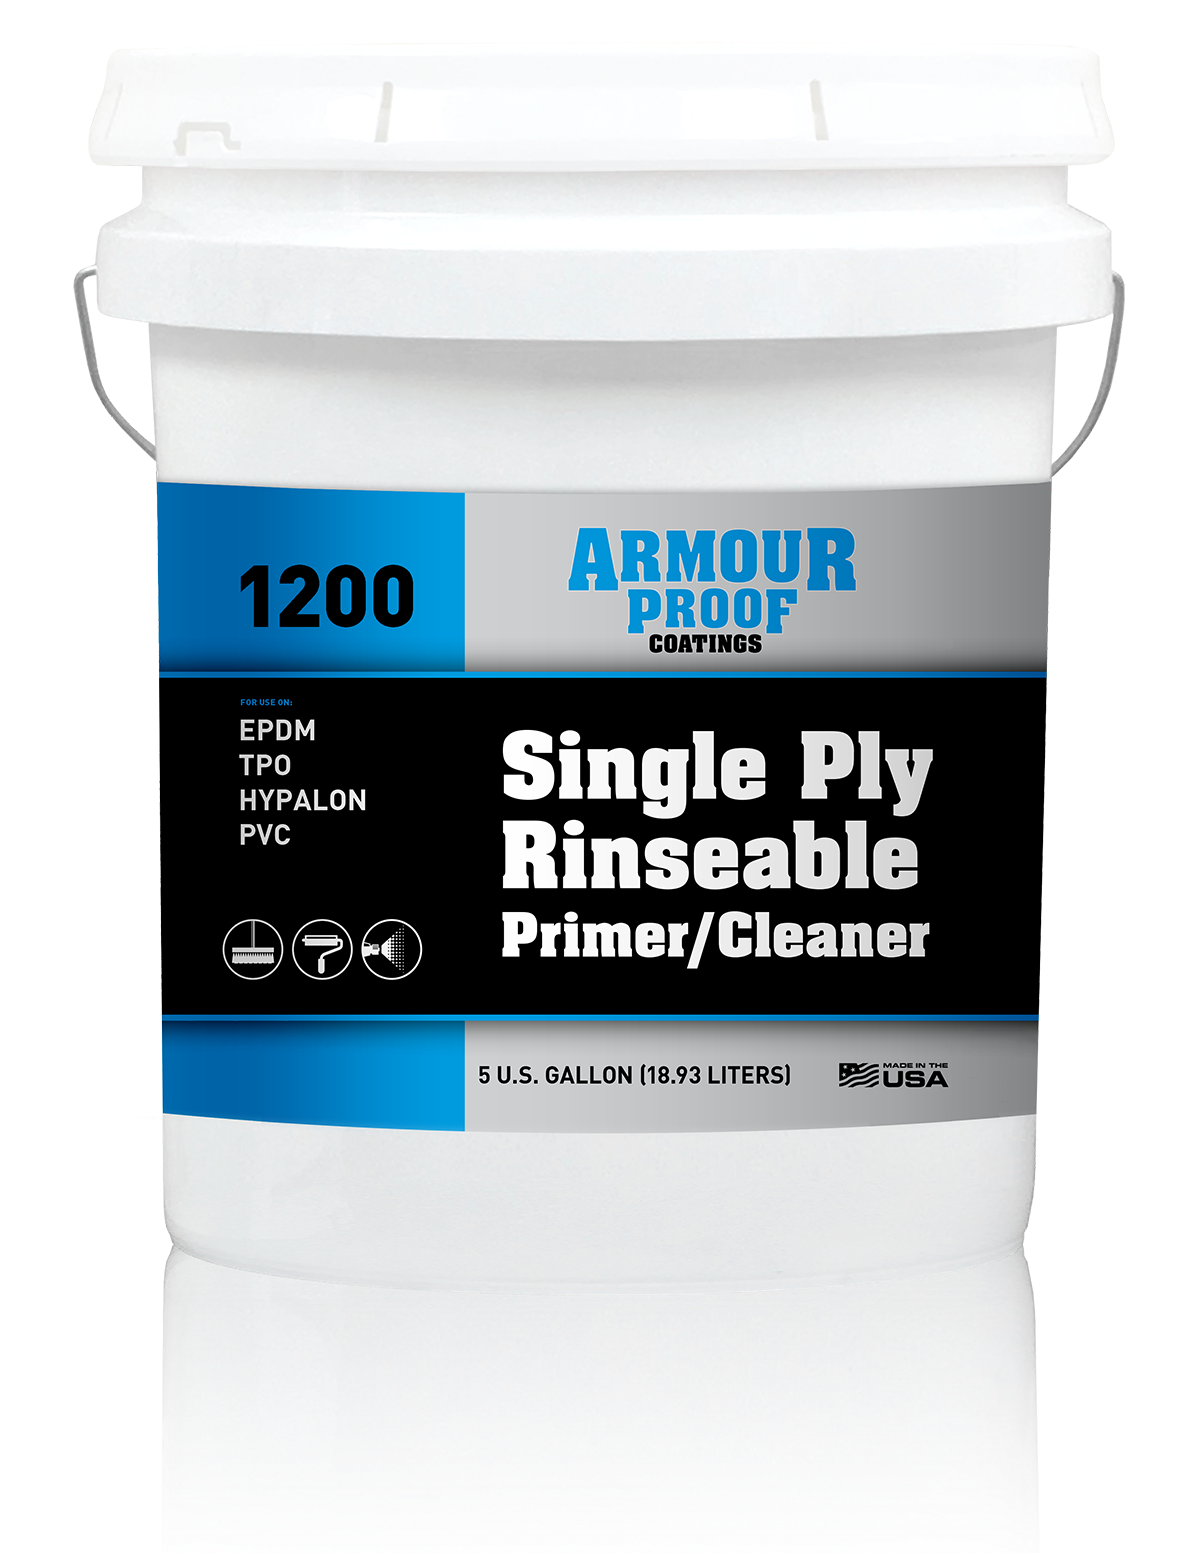 Armour Proof 1200 Single-Ply Rinseable Primer/Cleaner - 5 Gallon Bucket